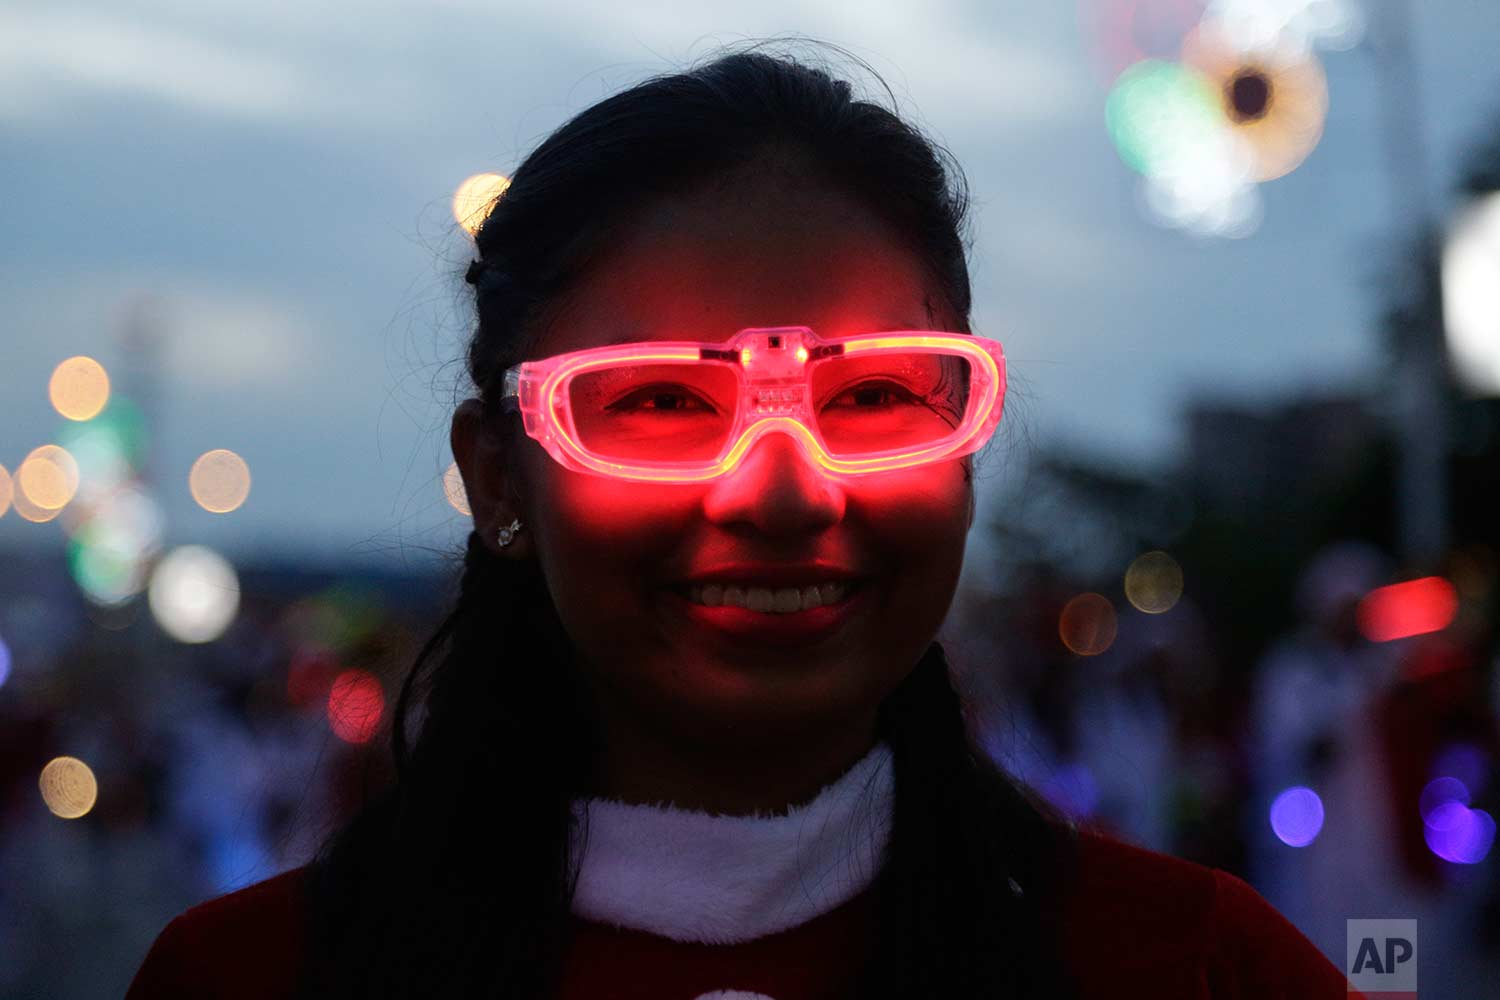 Estefani Garcia wears illuminated glasses as she marches in a music band during the annual Christmas parade in Panama City, Sunday, Dec. 10, 2017. (AP Photo/Arnulfo Franco)